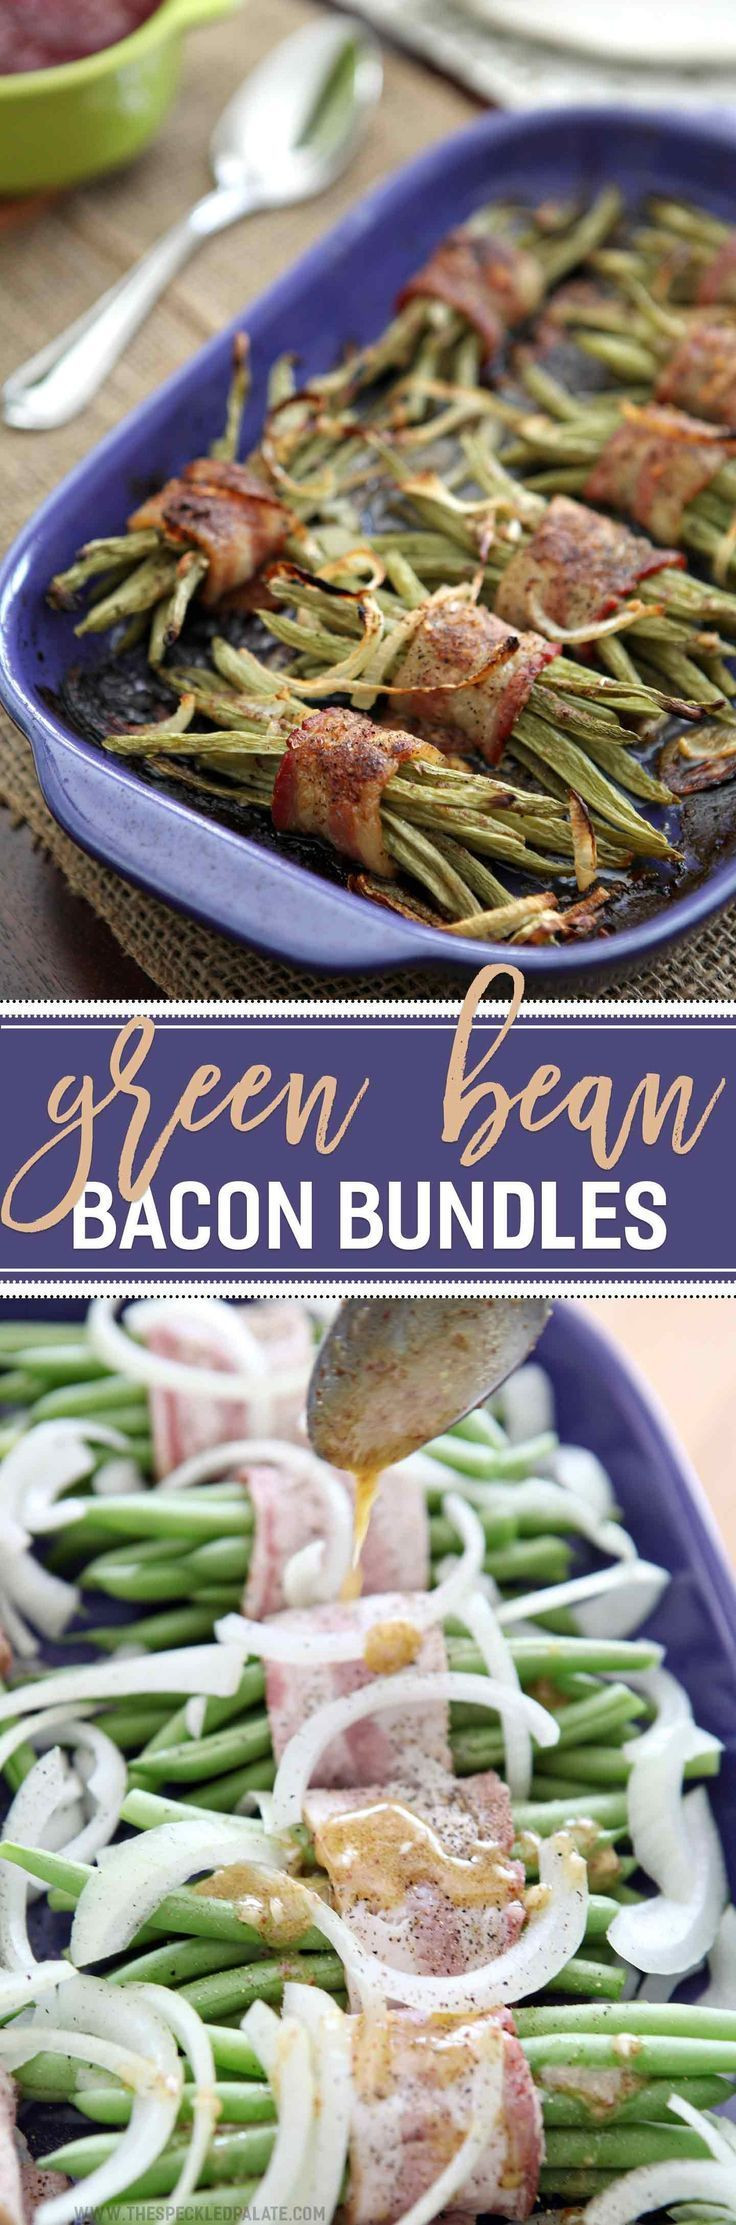 Green Thanksgiving Side Dishes  17 Best ideas about Green Bean Bundles on Pinterest